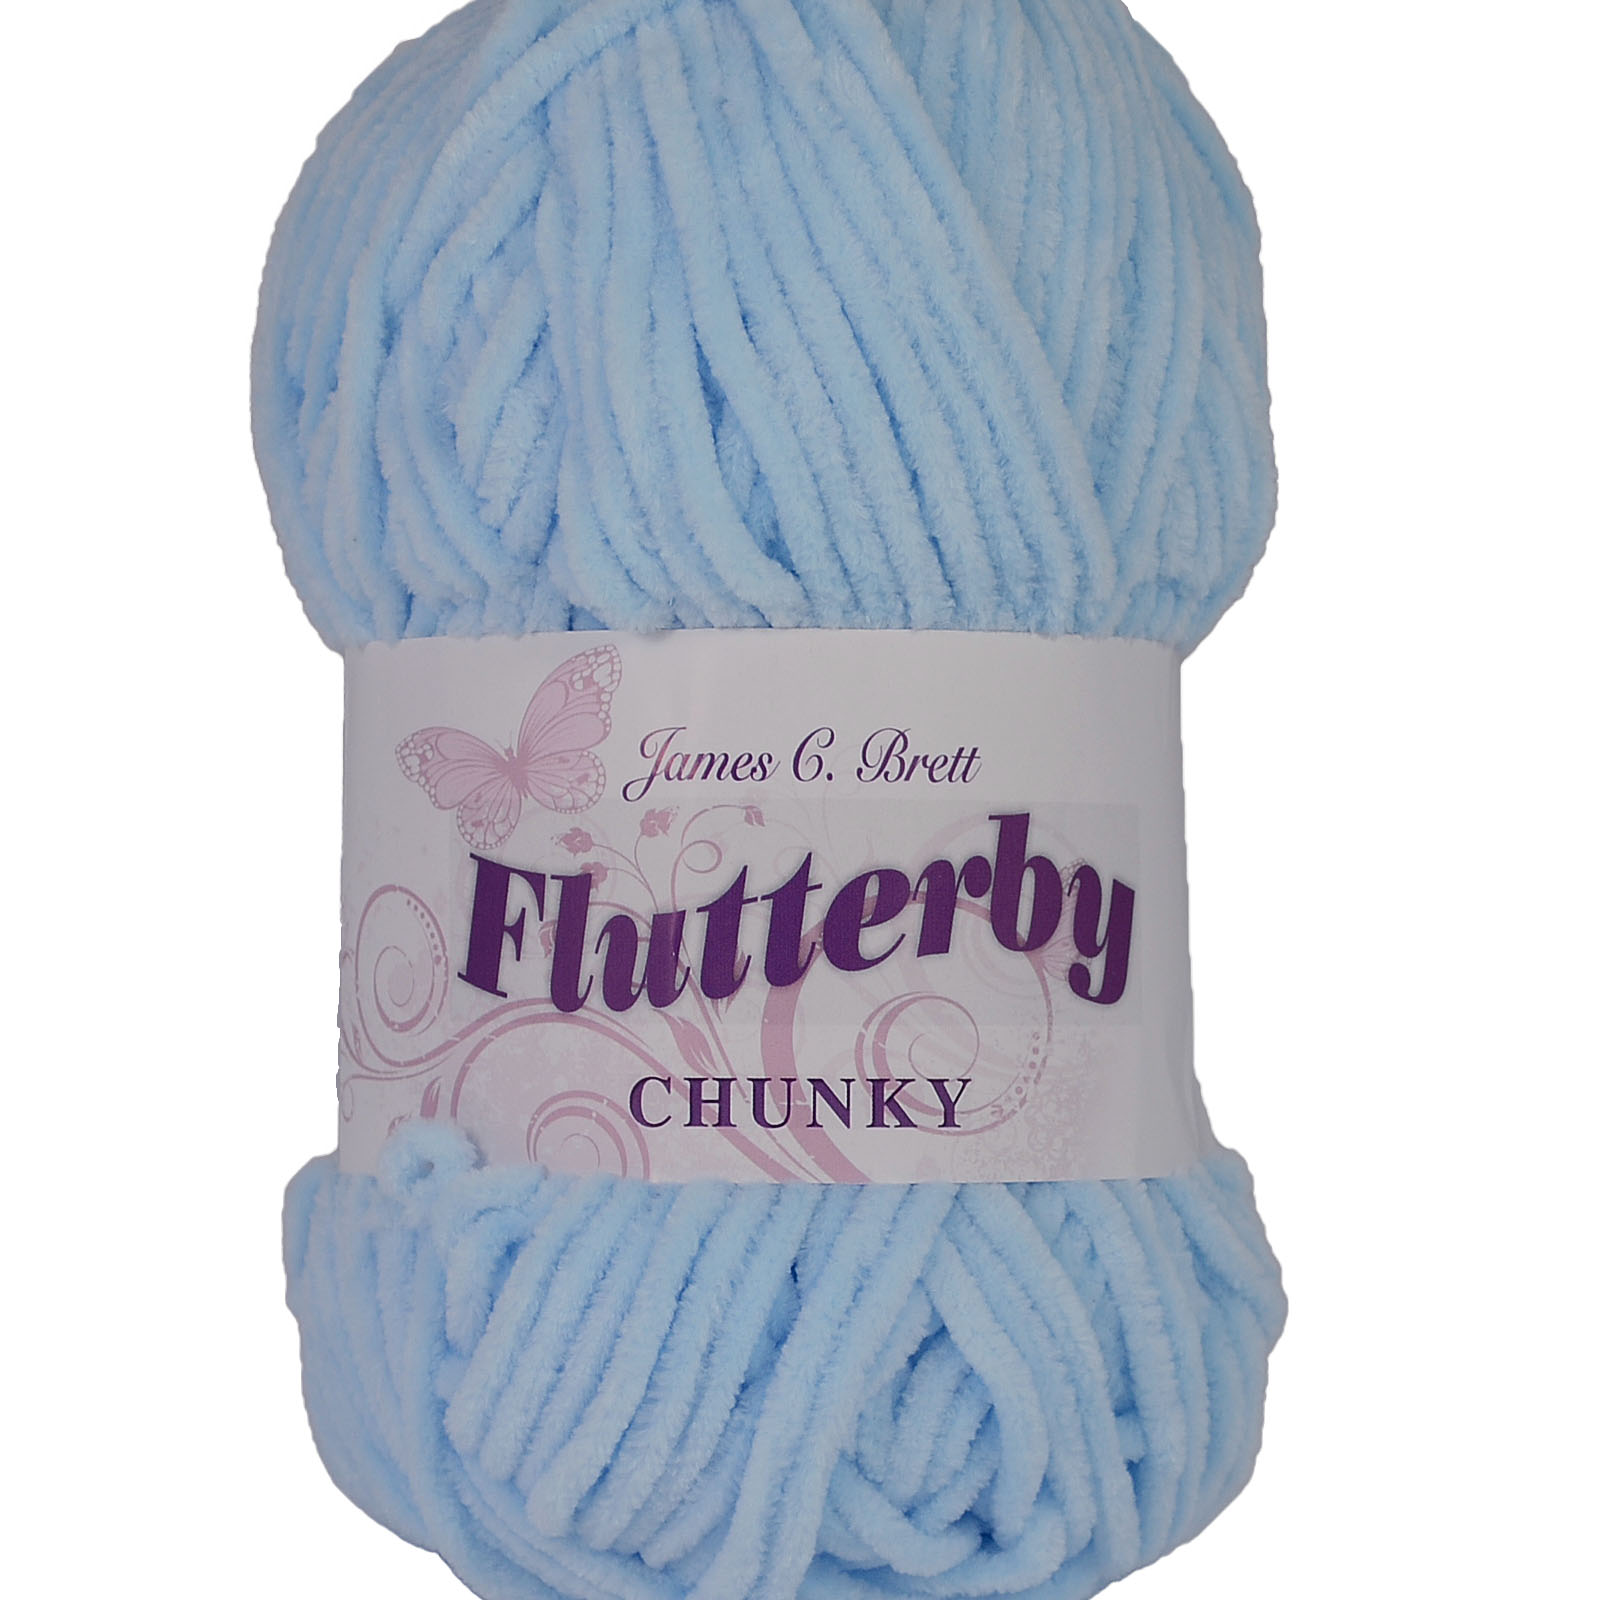 James C Brett  Flutterby Chunky Knitting Wool Yarn 100g B11 Apple